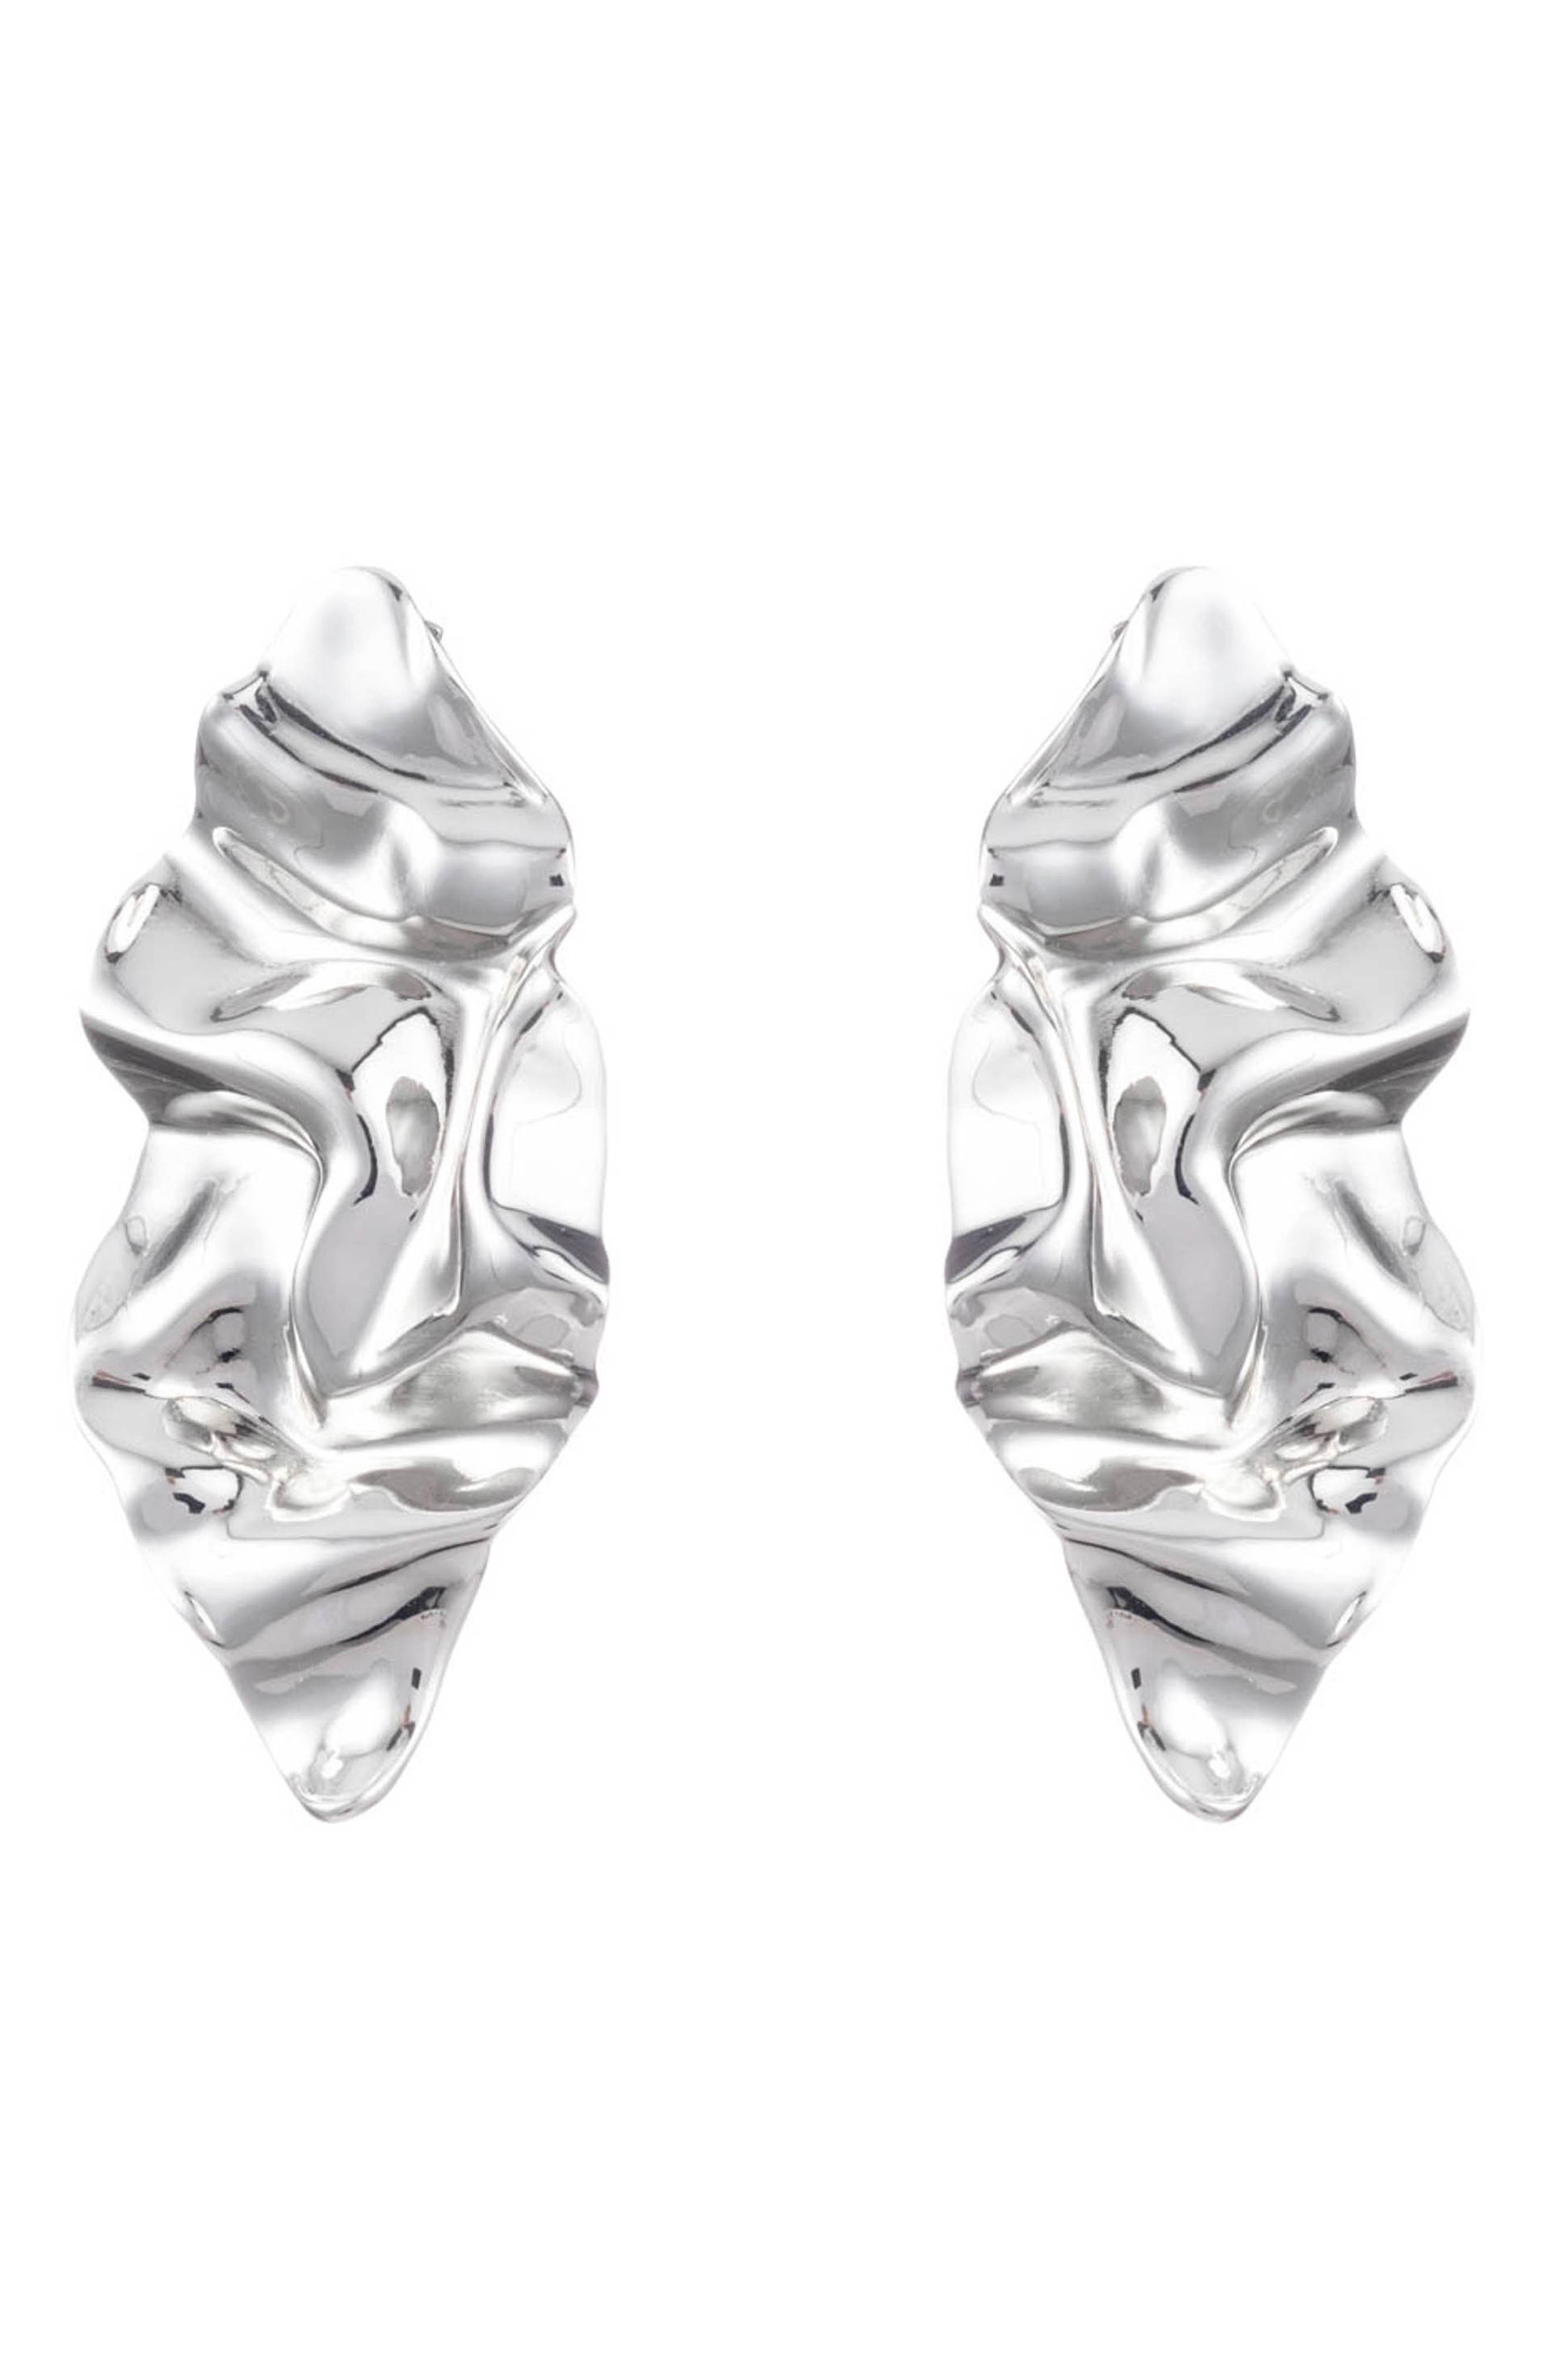 ALEXIS BITTAR, Crumpled Drop Earrings, Main thumbnail 1, color, SILVER